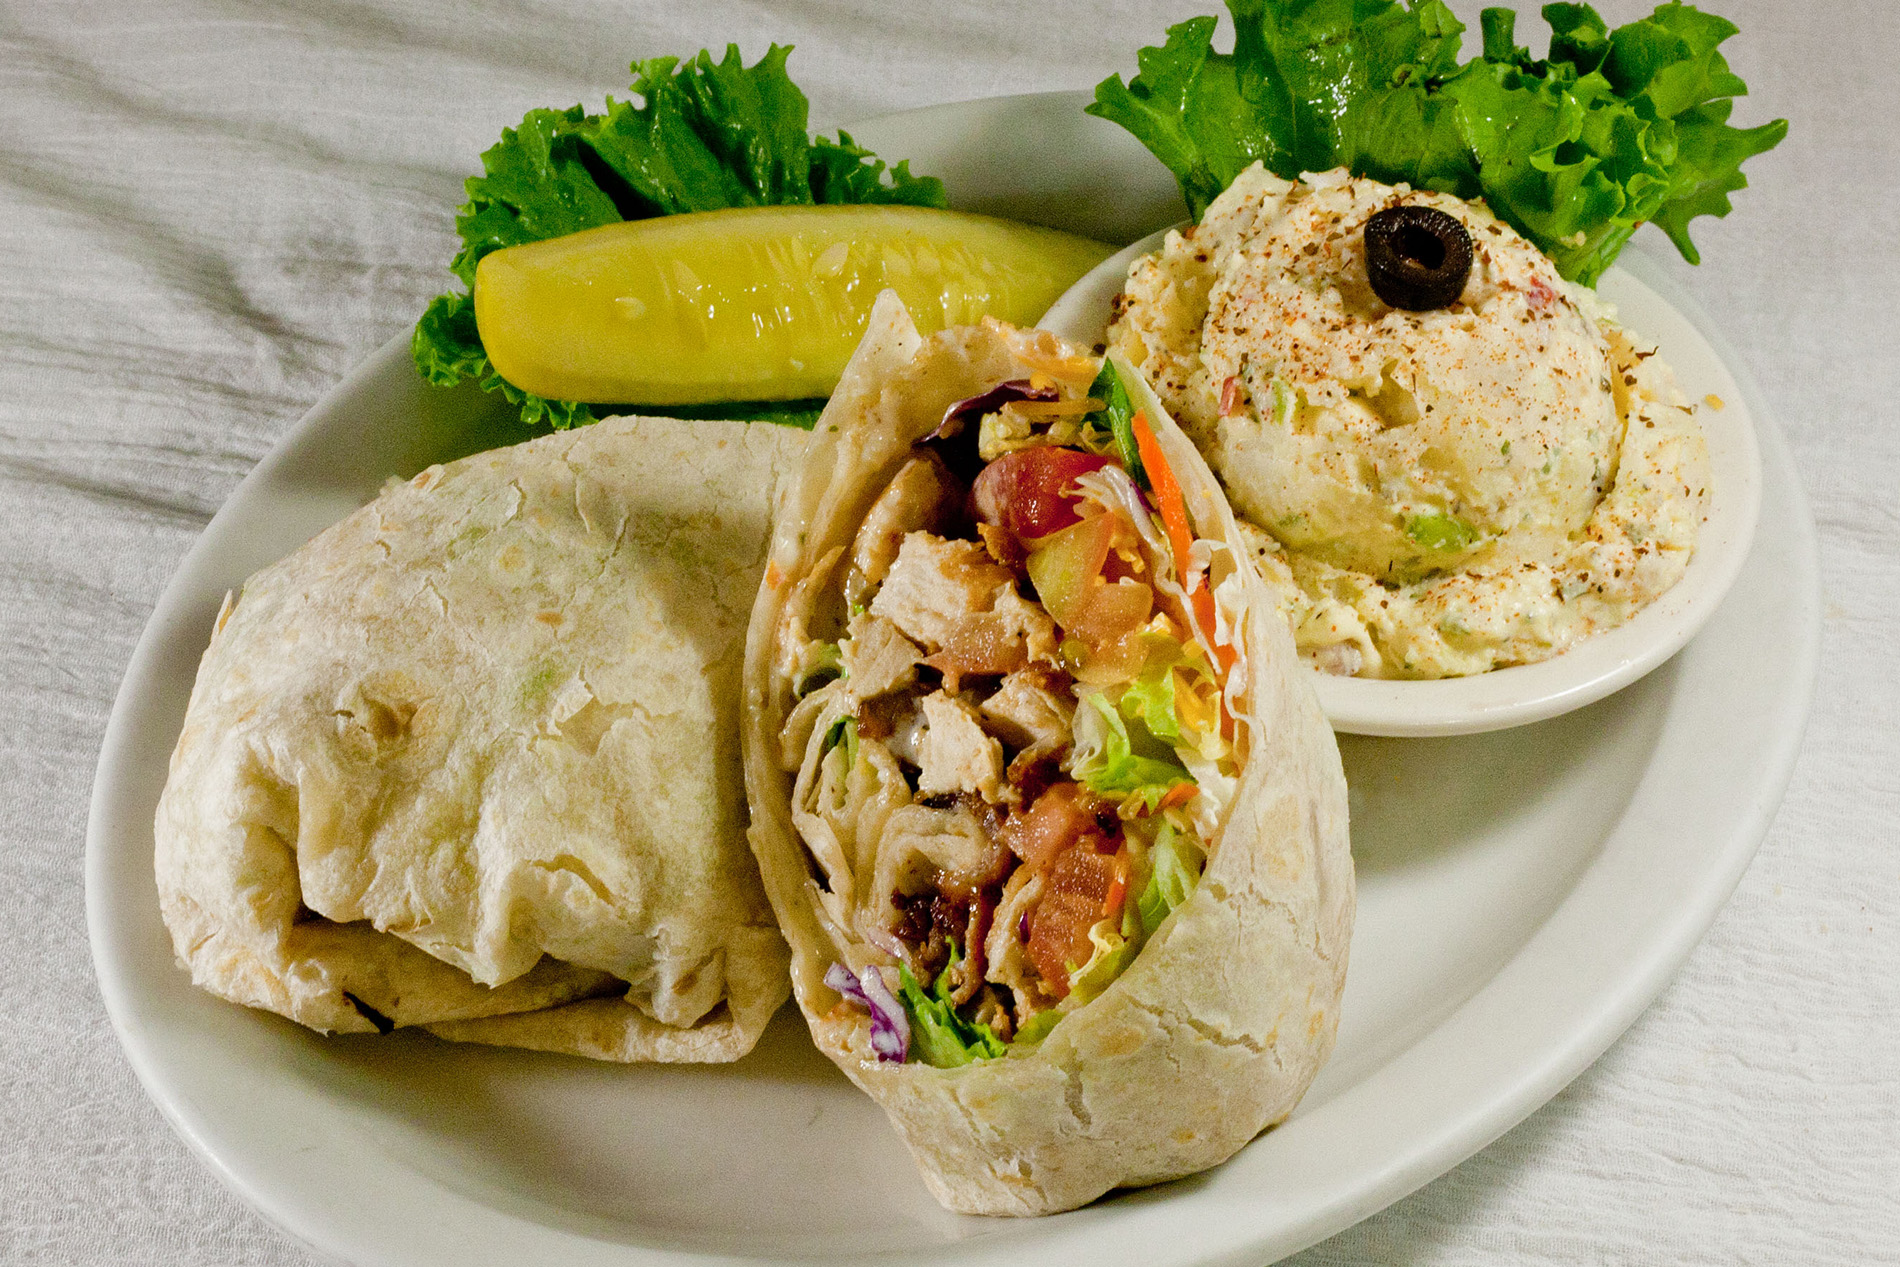 california chicken wrap with chicken, tomato, bacon, lettuce and cheese, side of potato salad